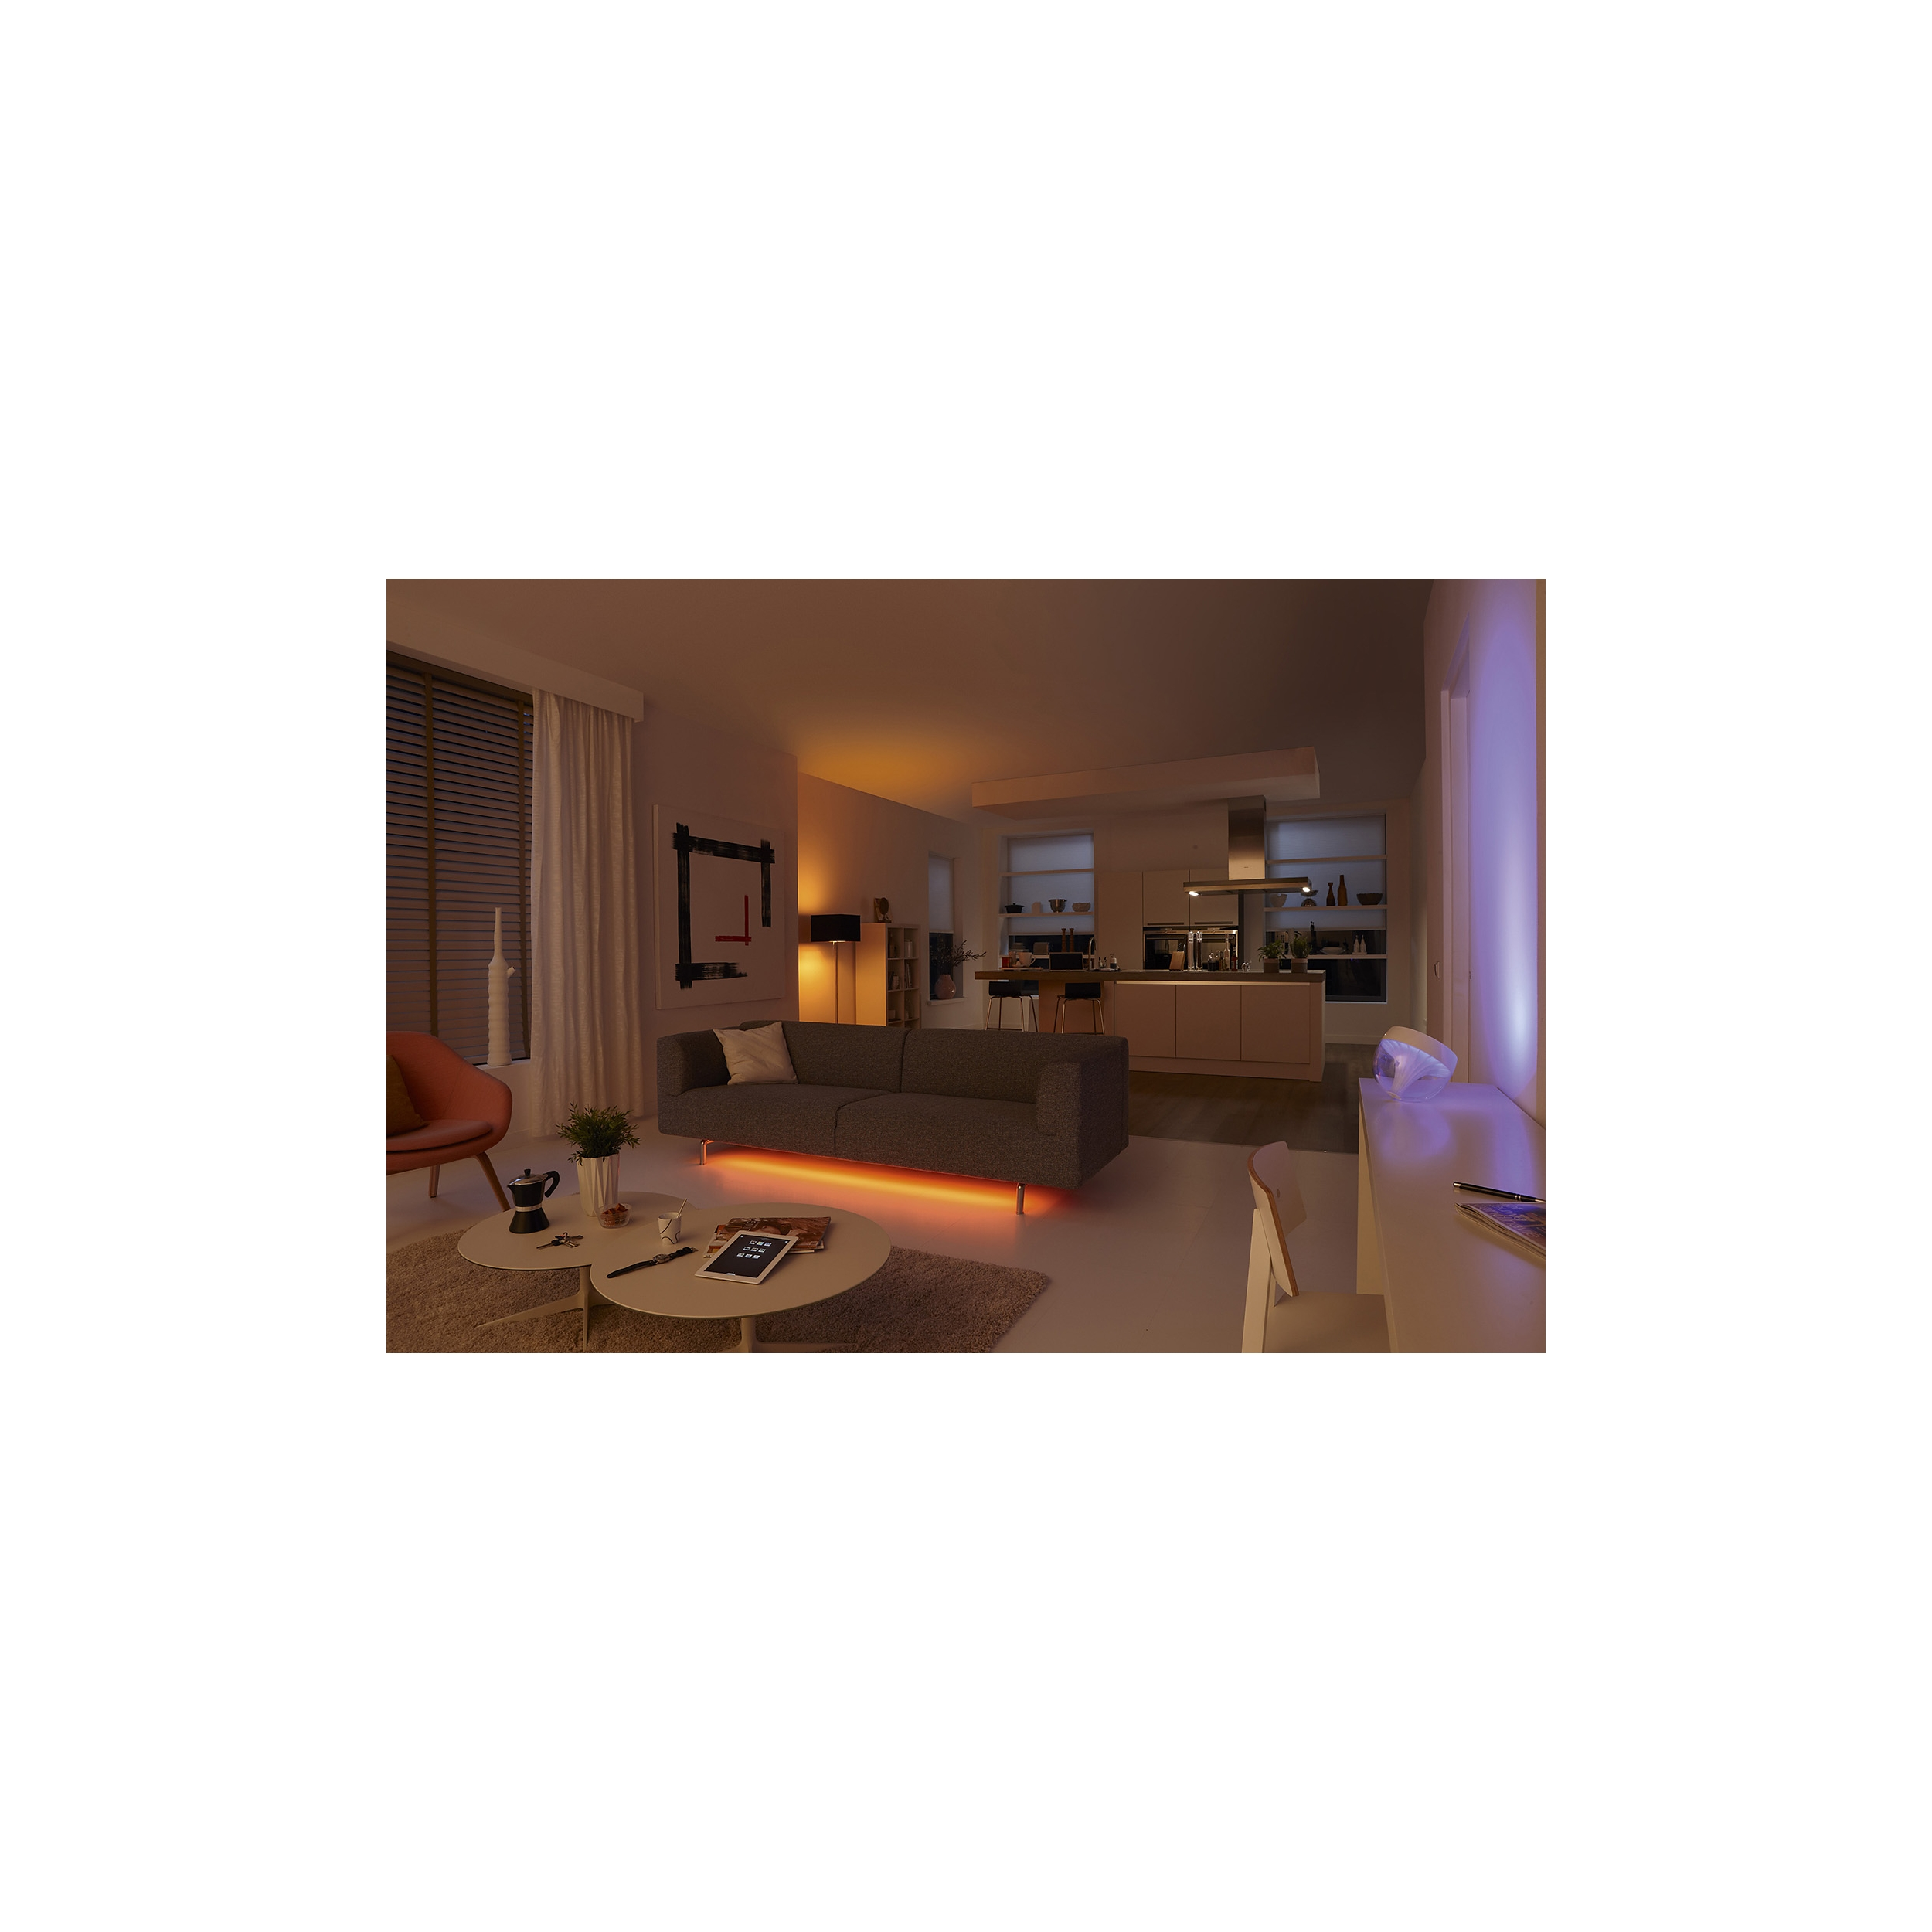 Philips LightStrips Hue WIFi LED Bed LivingRoom Expressive Mood Light Wall Lamp eBay